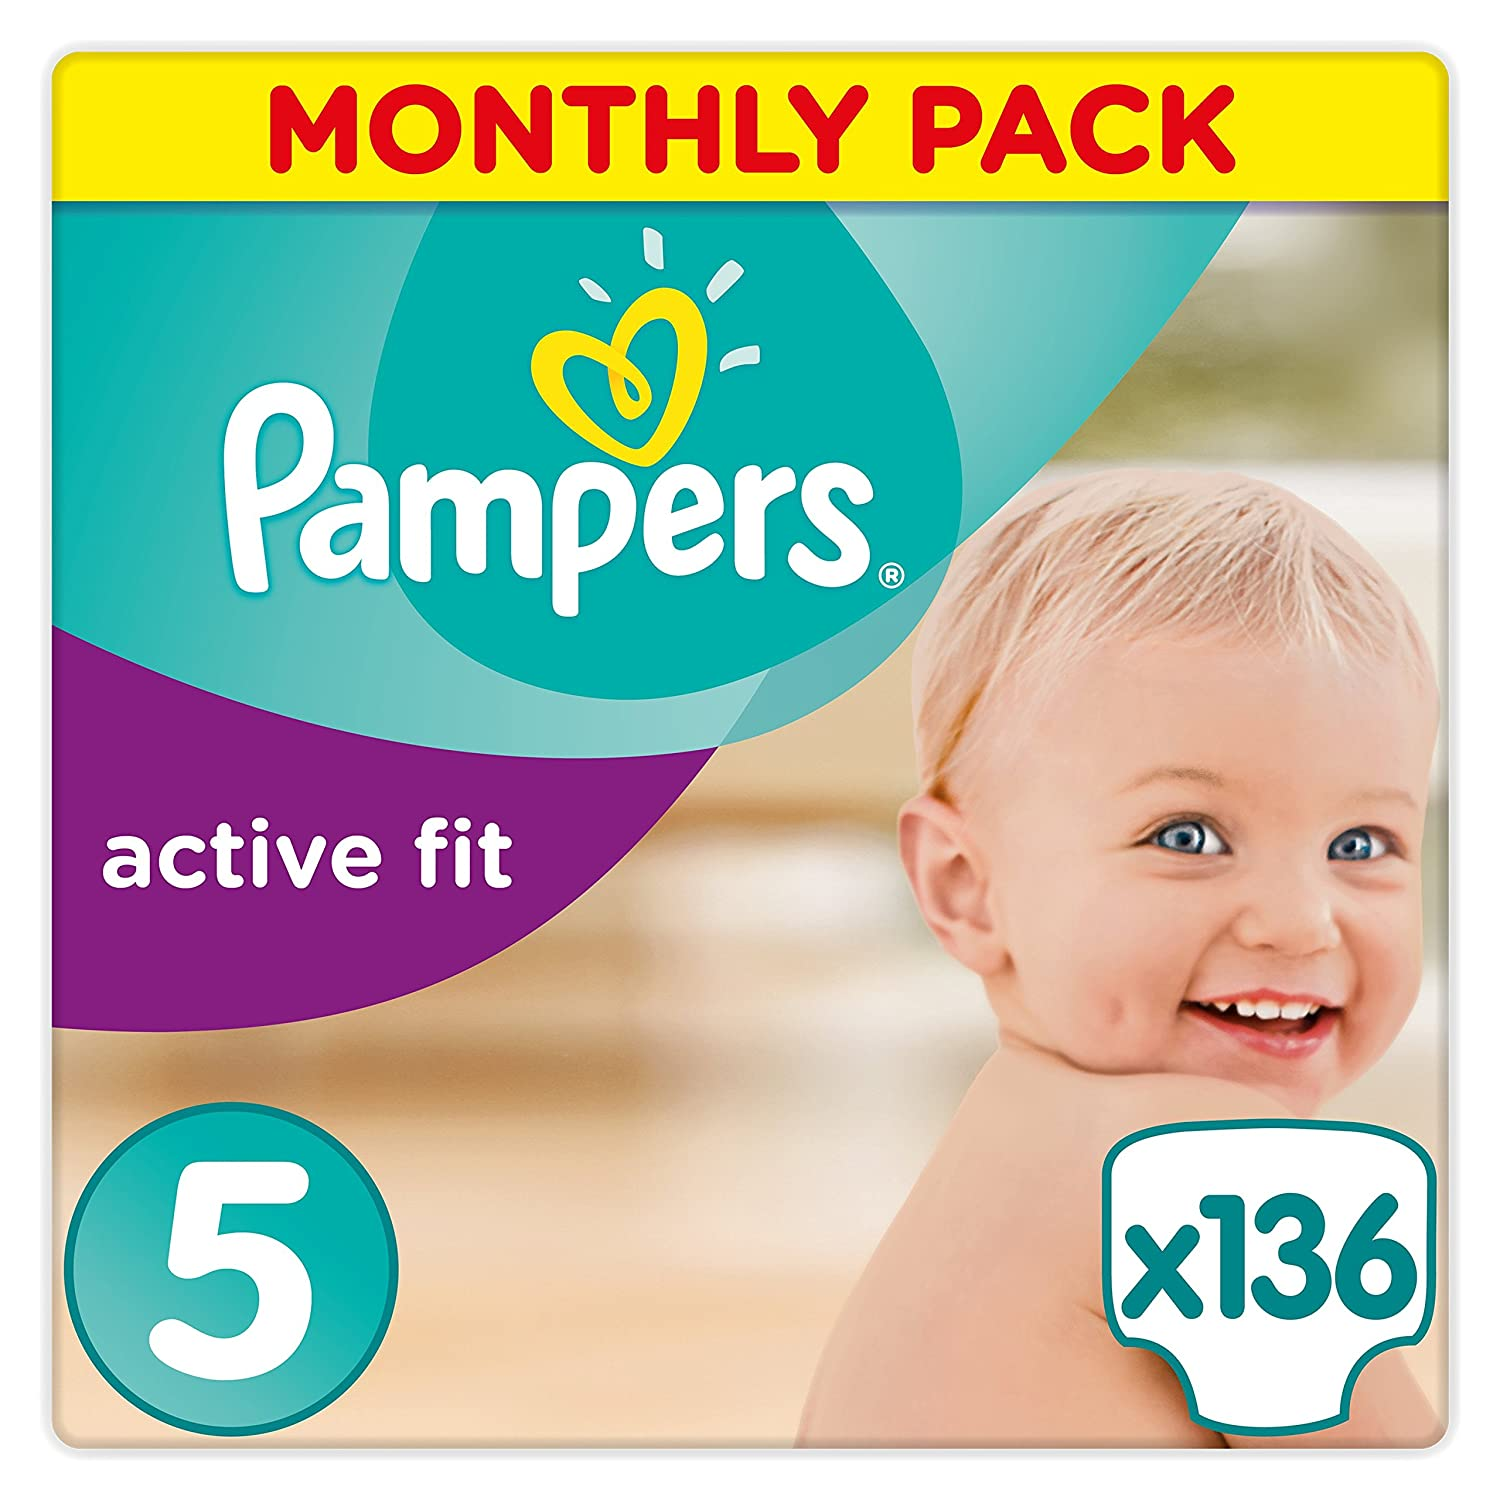 Pampers - Pañal active fit maxi 8 - 16kg (168 unidades) Procter and Gamble Spain 81395072 B00AFA4DHQ